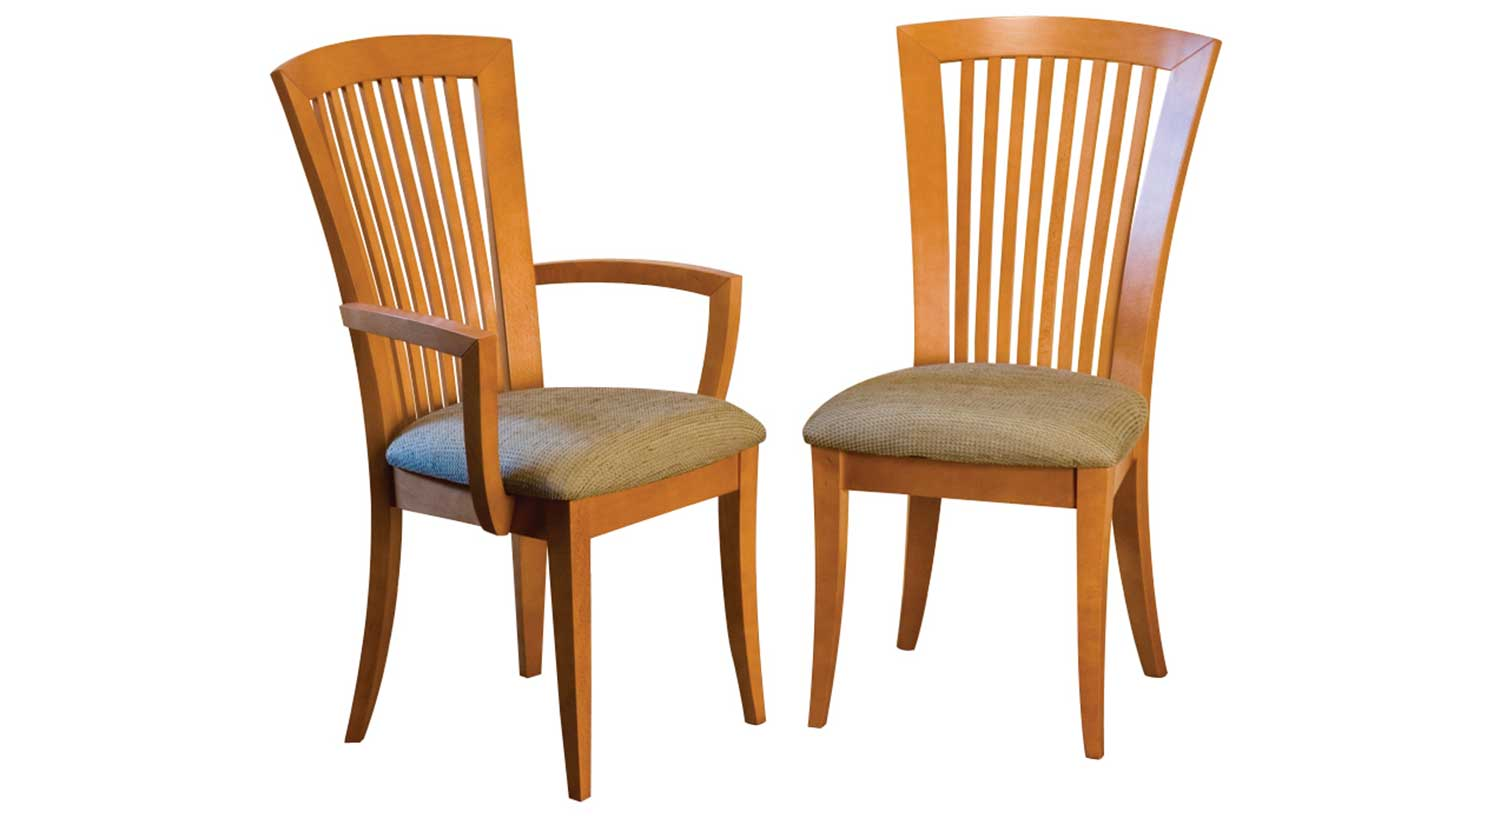 Circle Furniture - Todd Dining Chair  Dining Chairs New England